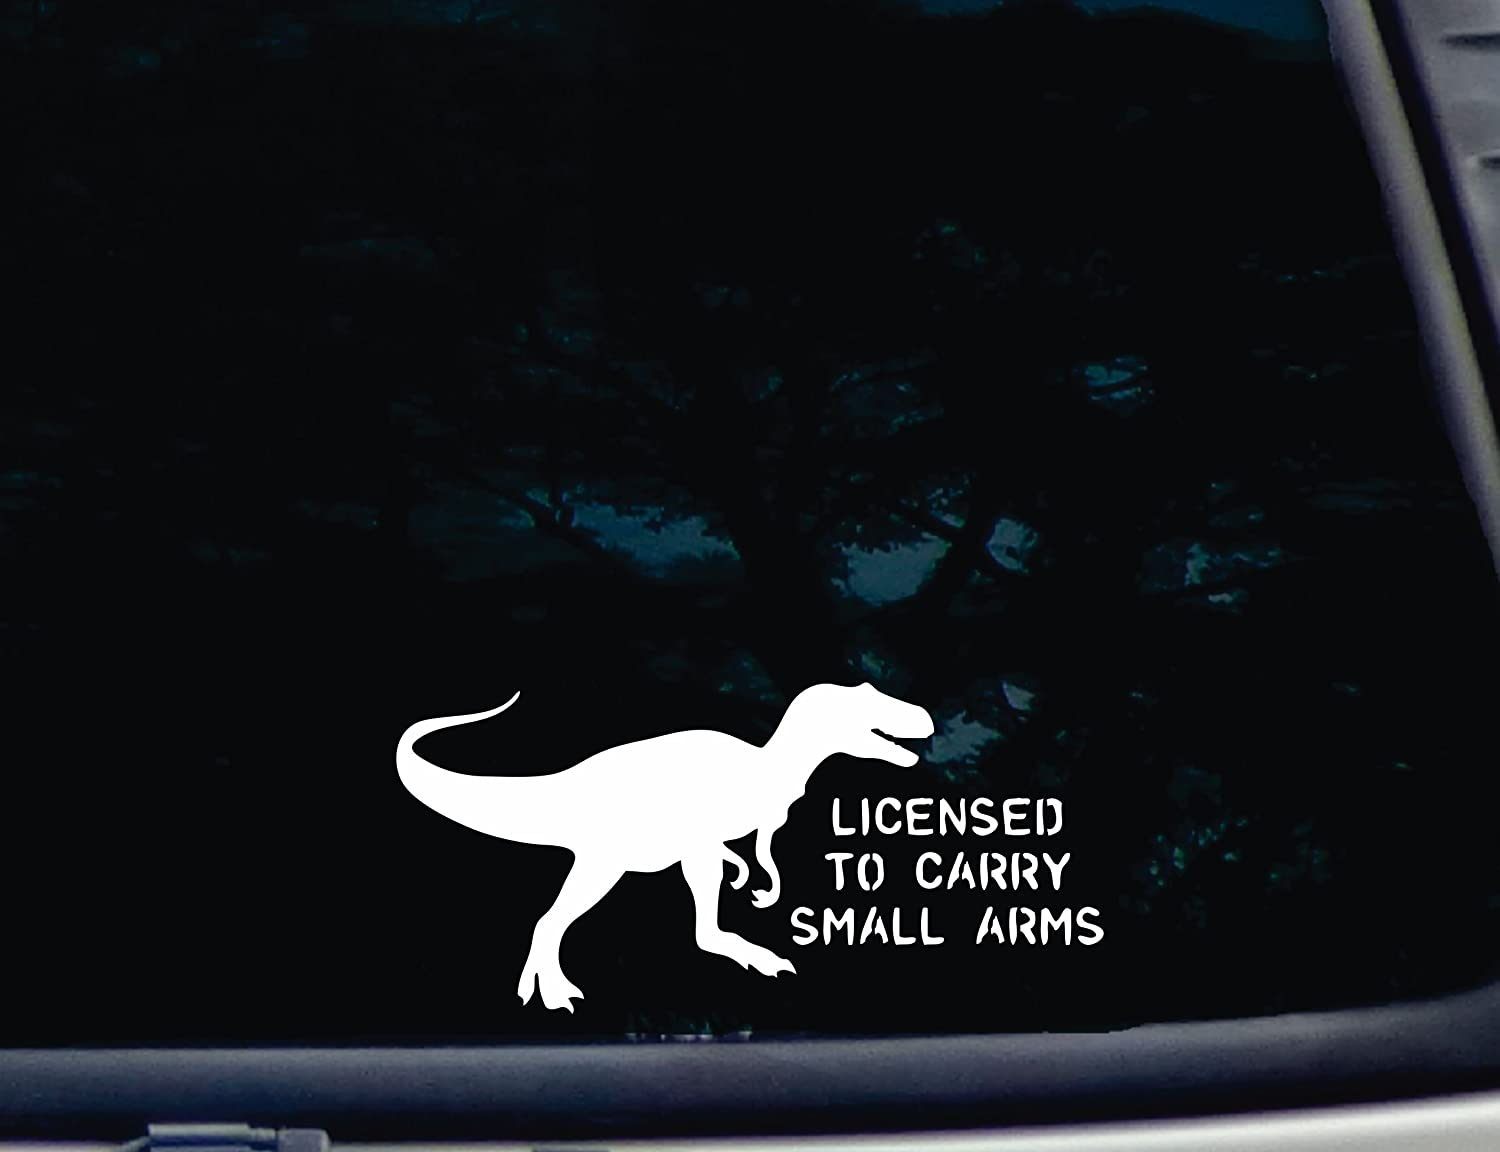 Amazoncom TRex Licensed To Carry Small Arms X Die - Vinyl decals for your caramazoncom your stick family was delicious trex vinyl decal